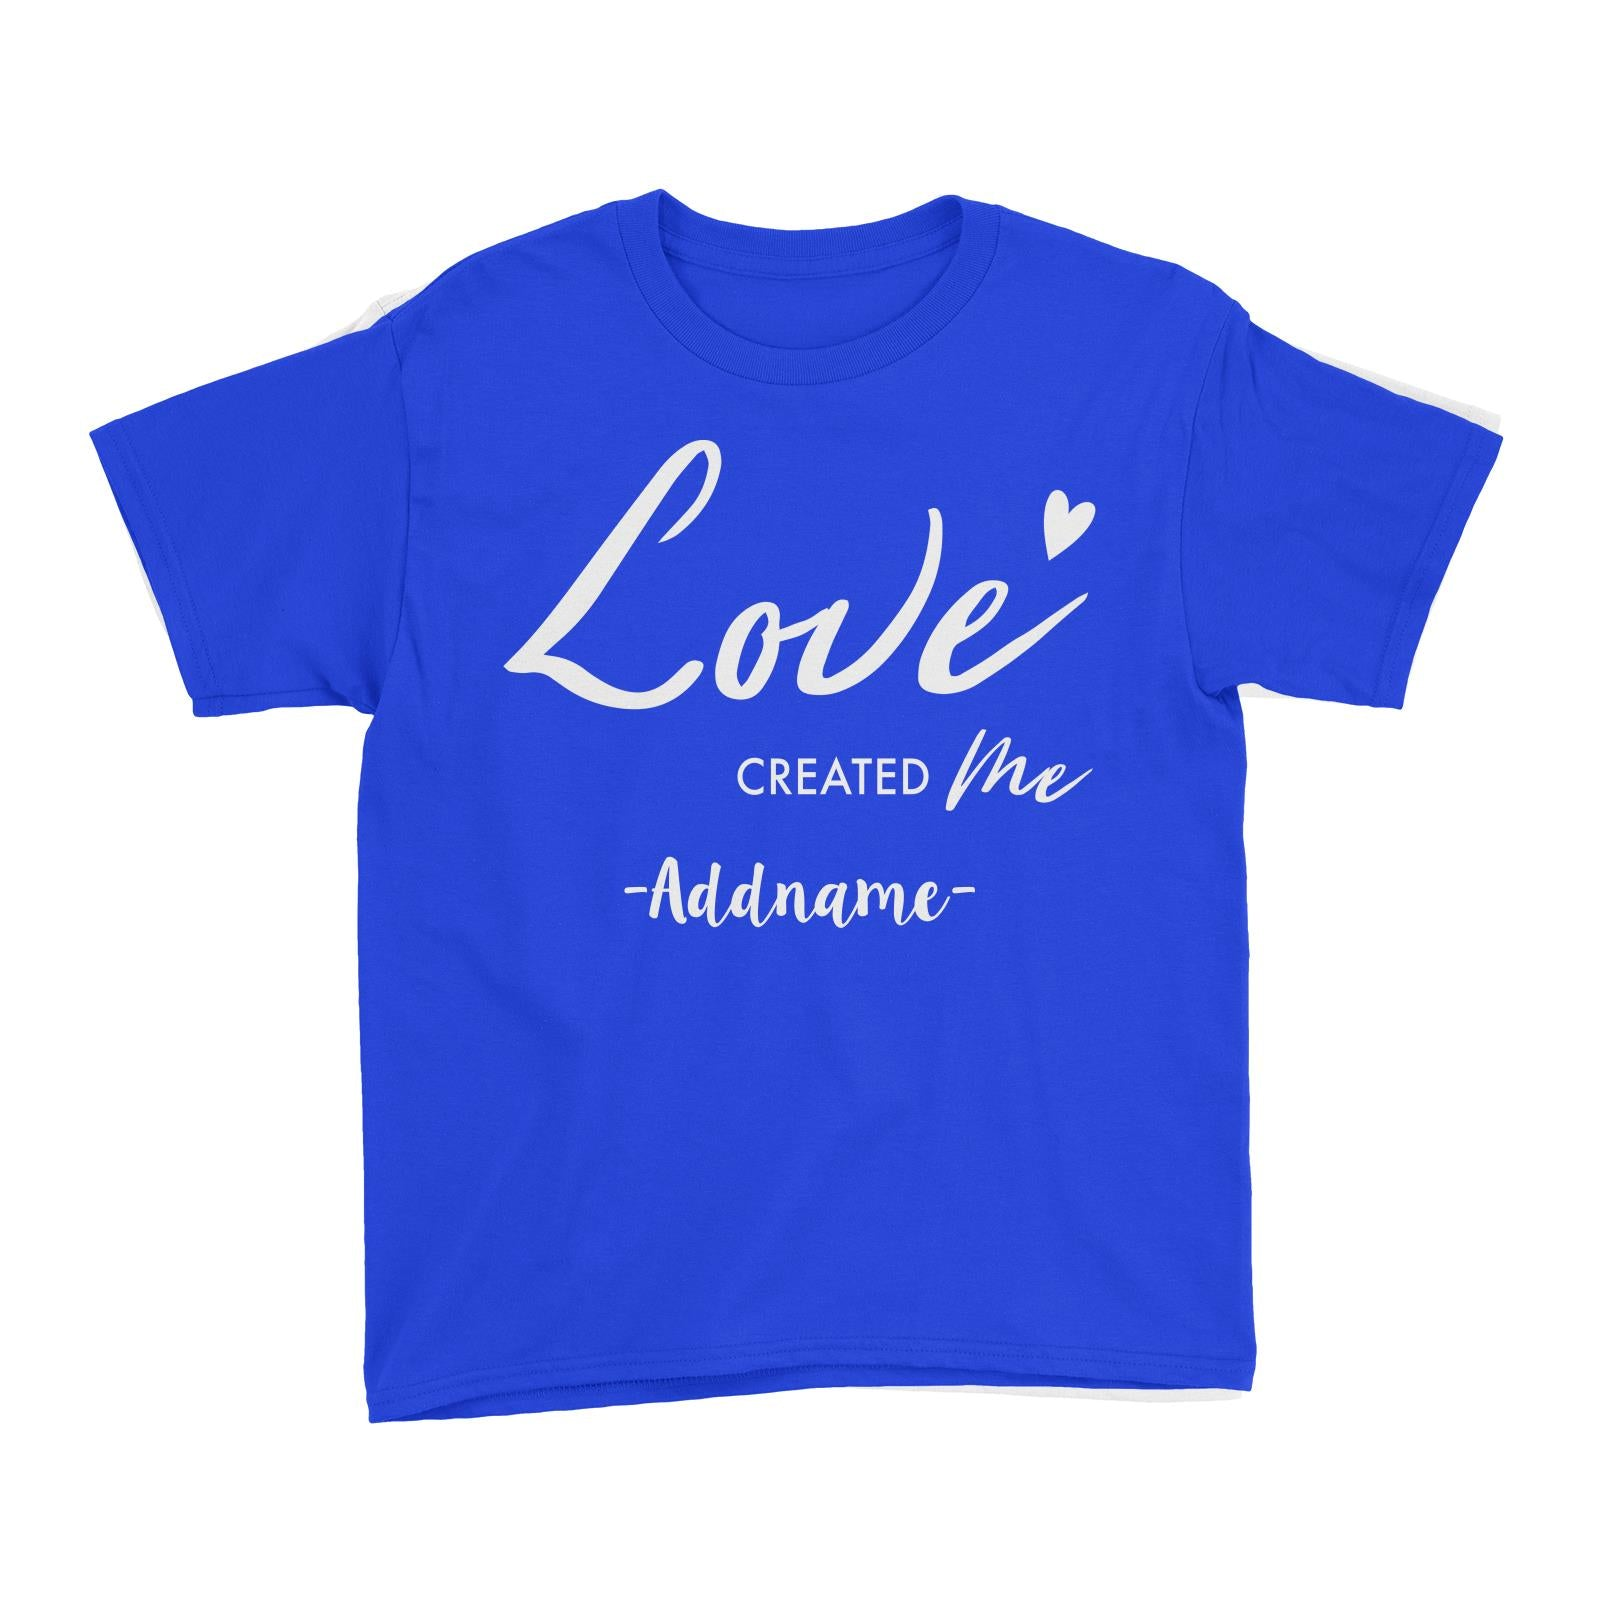 Love Created Me Addname Kid's T-Shirt  Matching Family Personalizable Designs